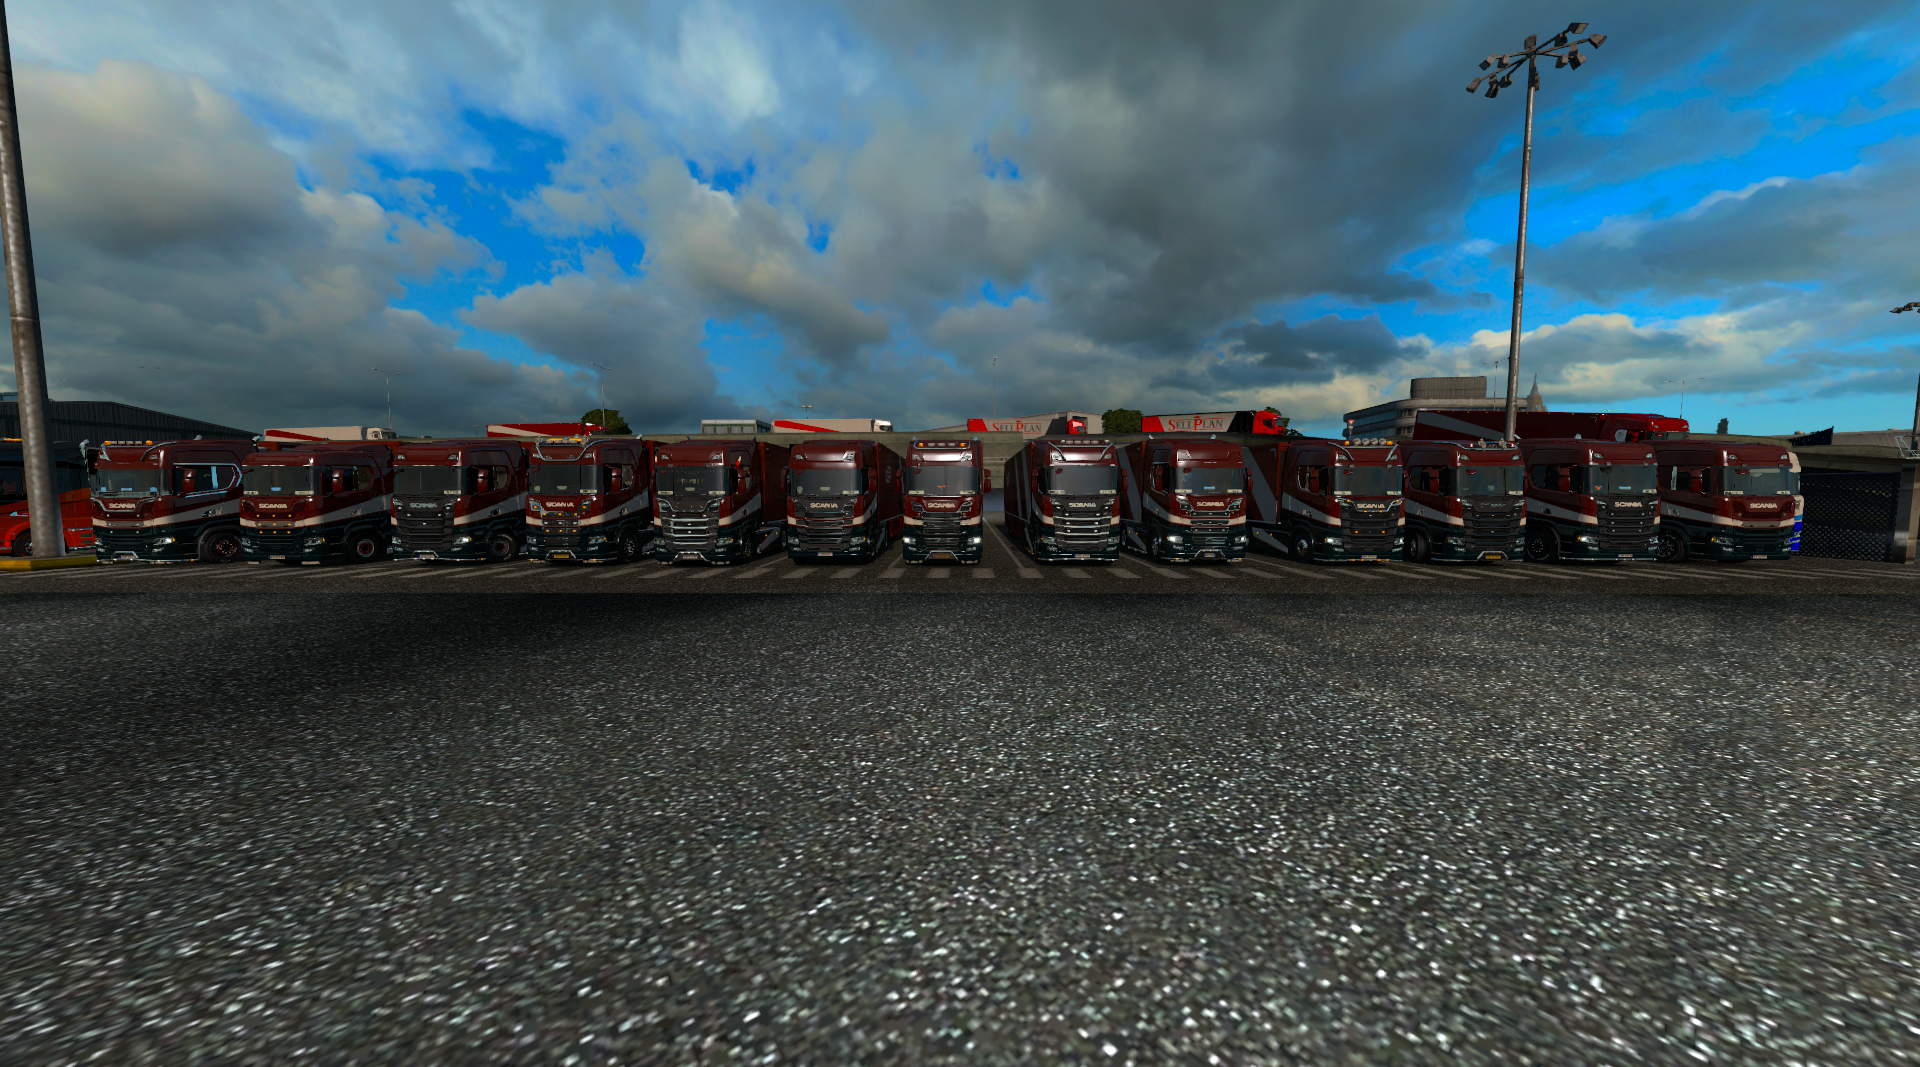 ets2_20190406_202733_00.png